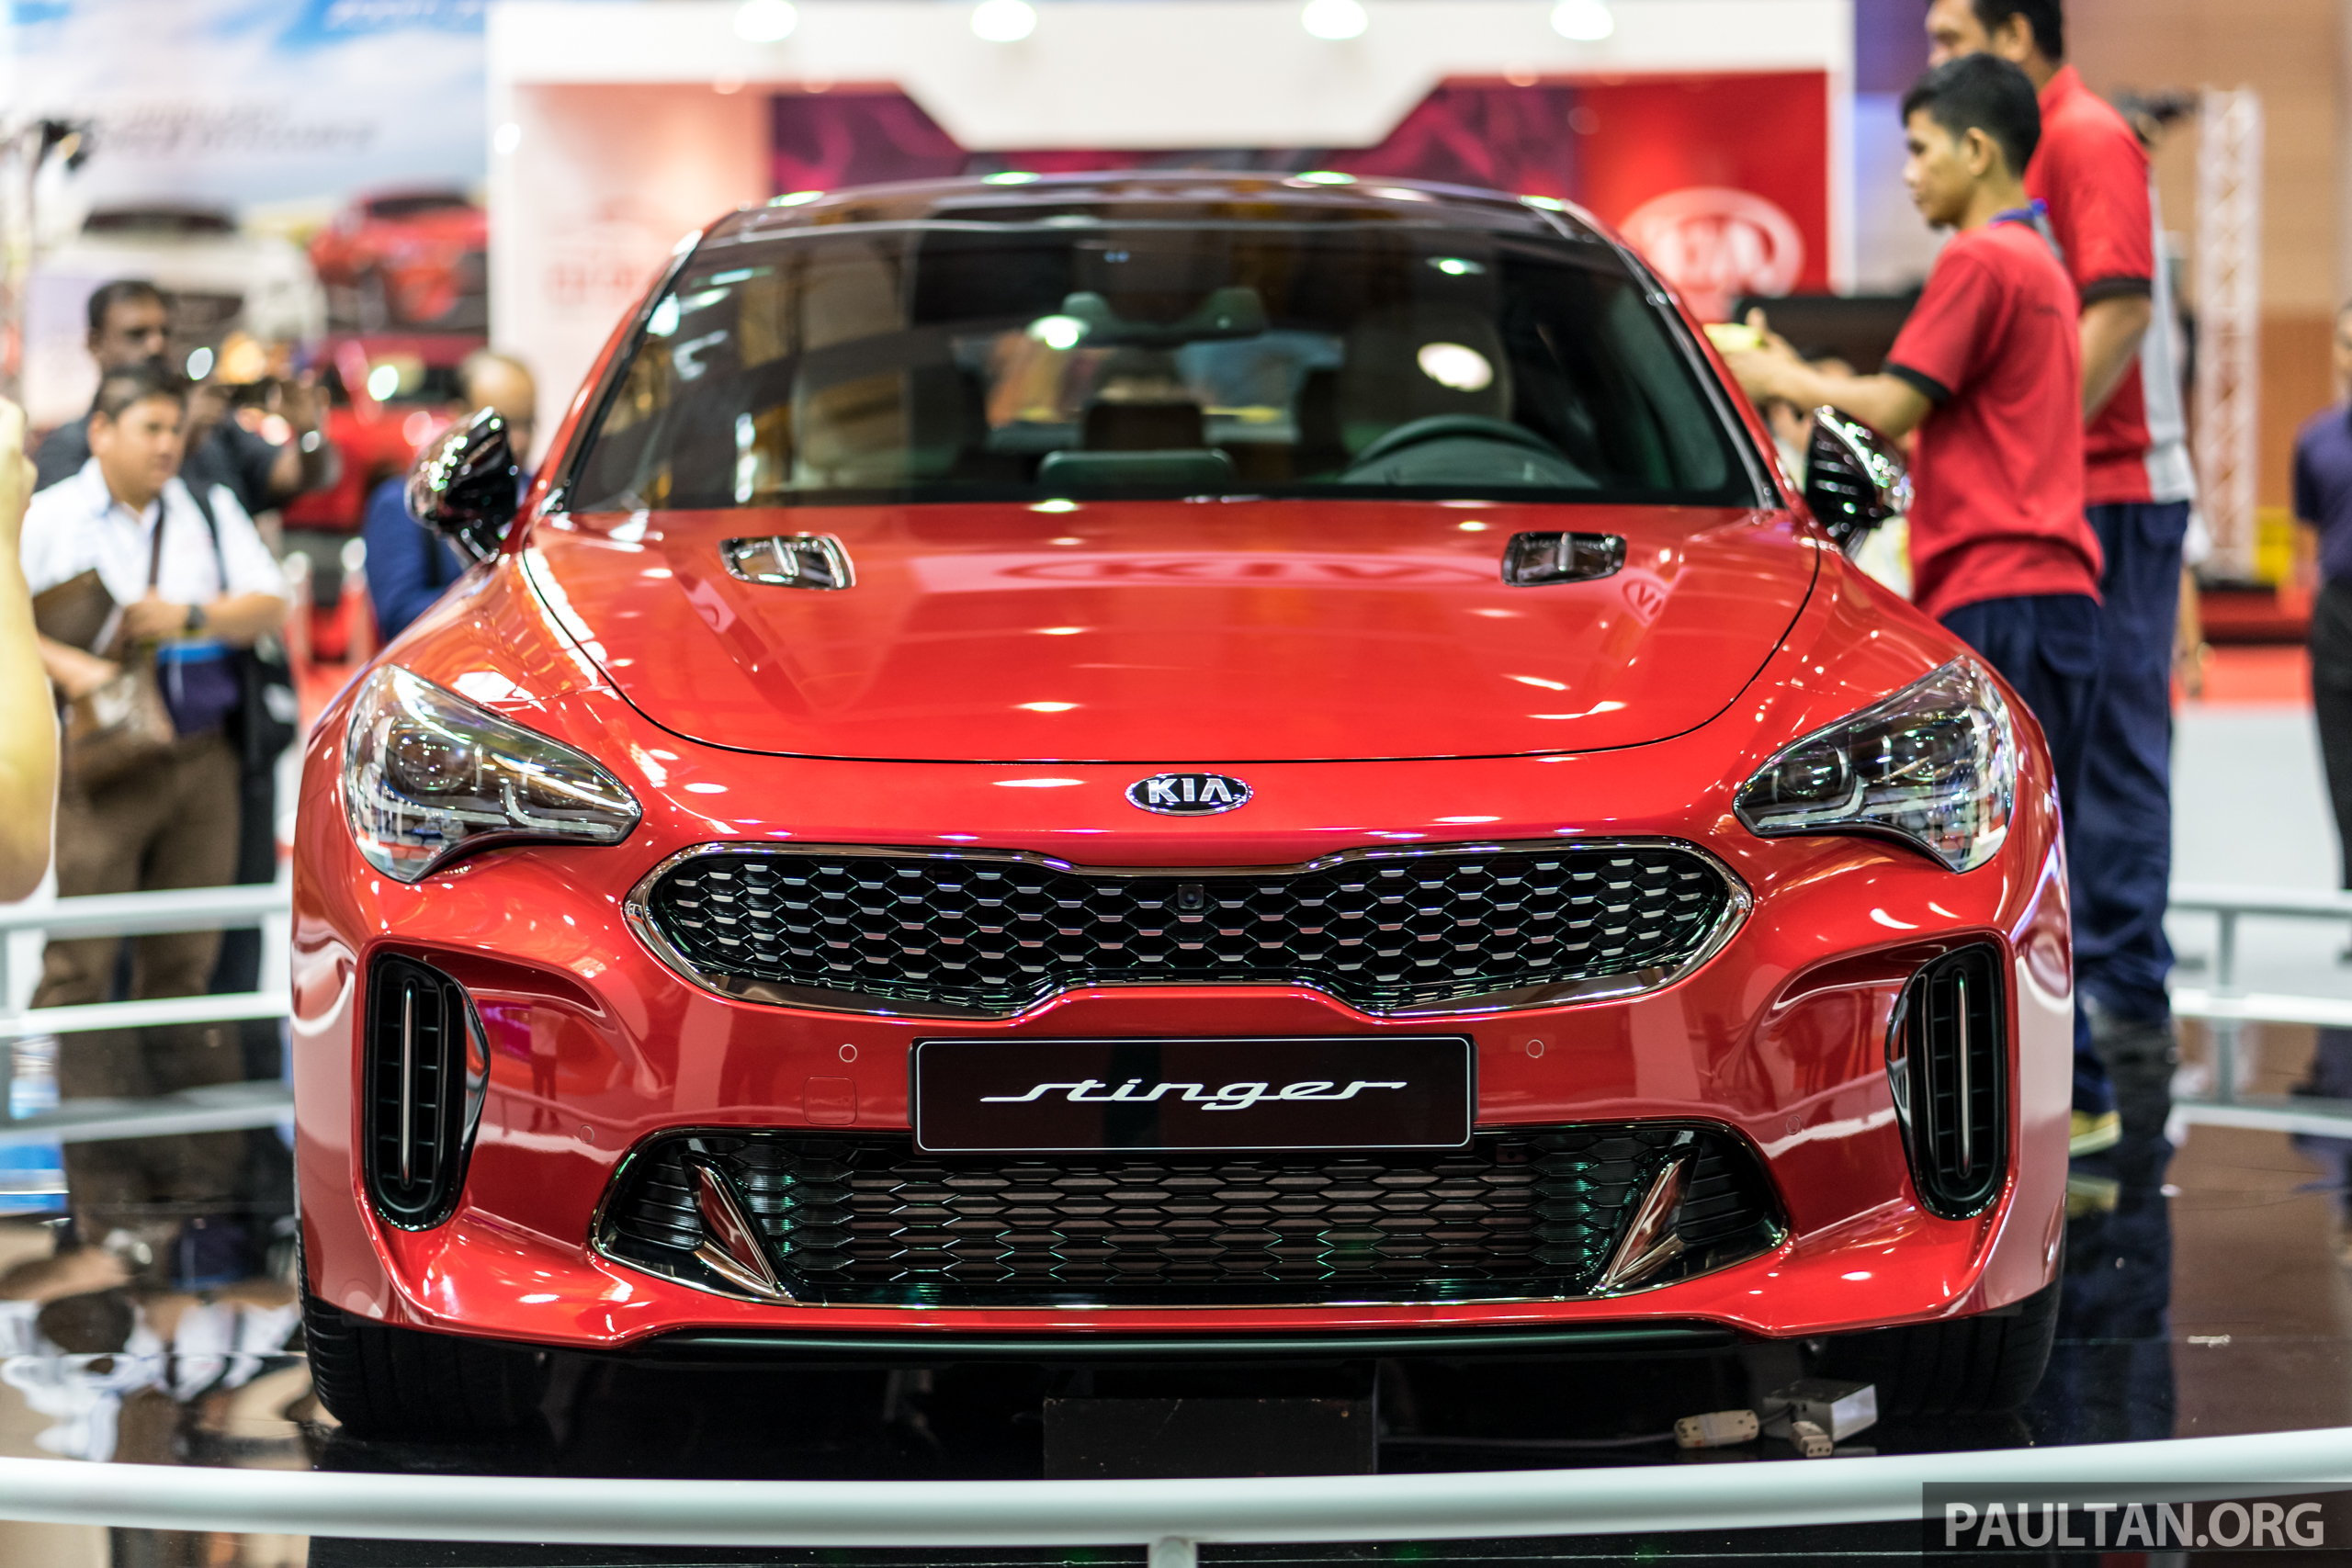 kia stinger gt 3 3l turbo v6 previewed in malaysia paul tan image 735131. Black Bedroom Furniture Sets. Home Design Ideas